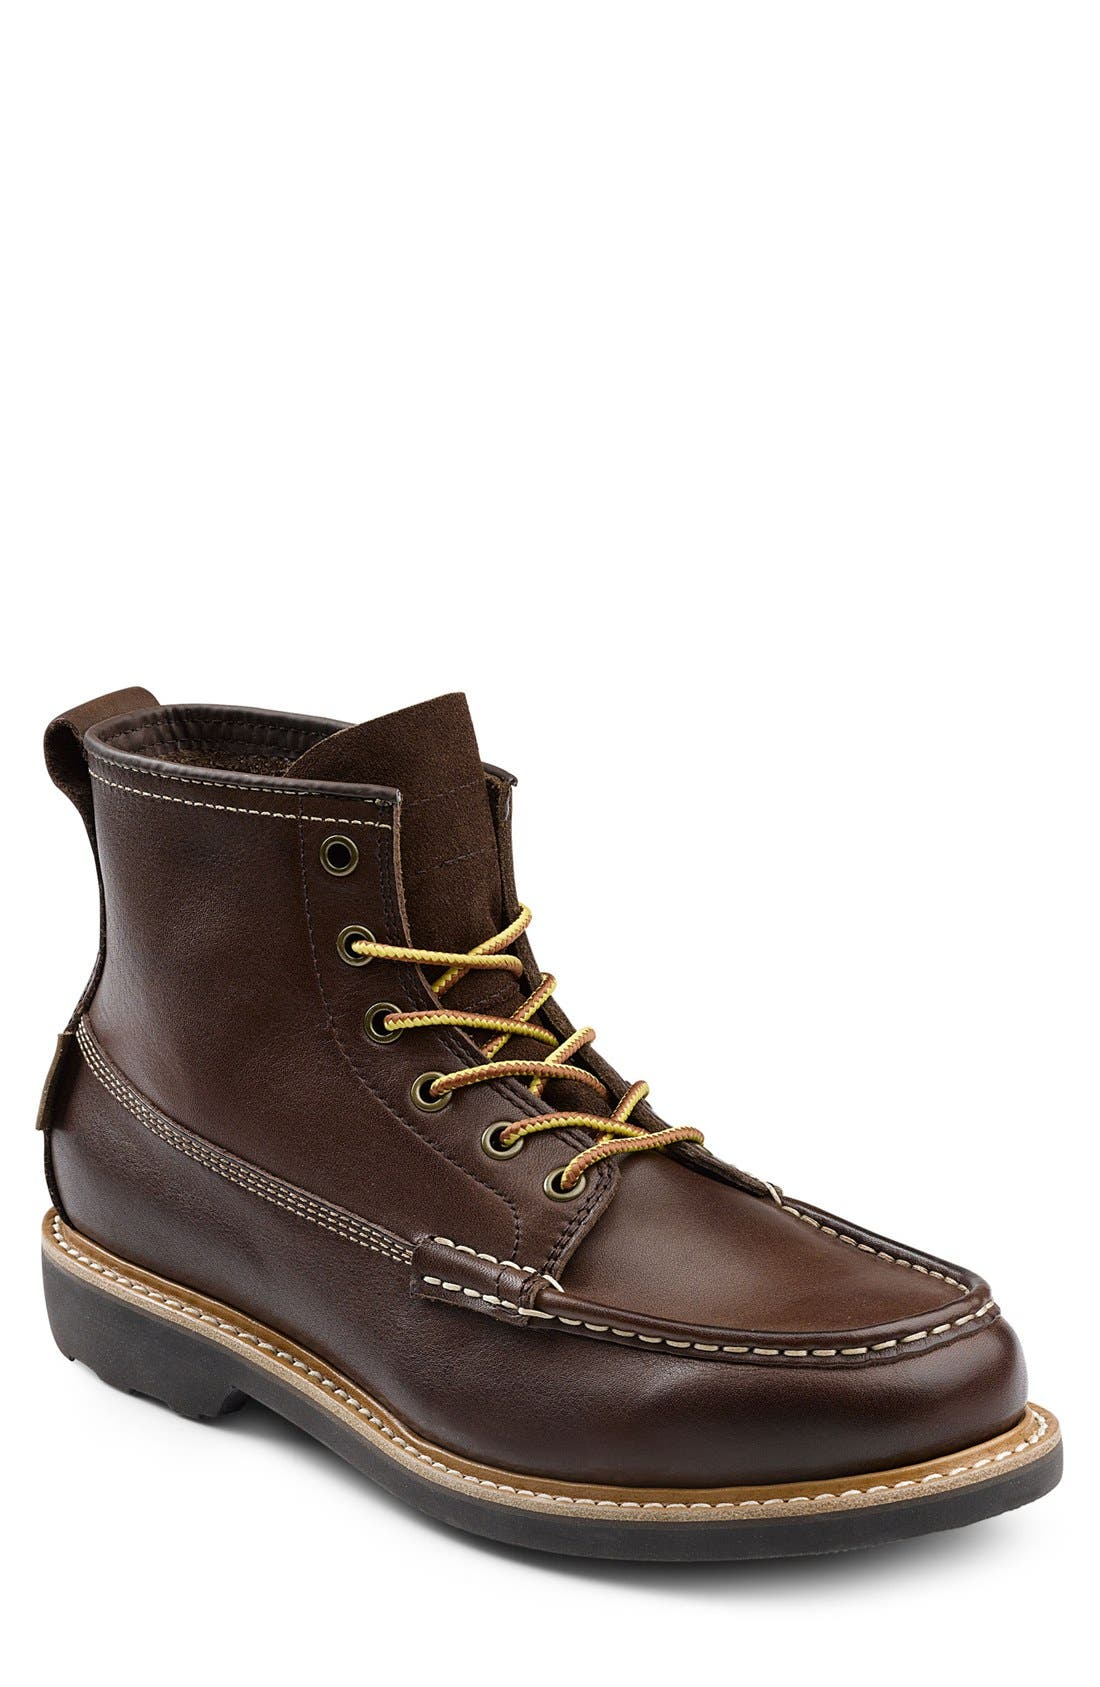 'Ashby' Moc Toe Boot,                             Main thumbnail 1, color,                             Mahogany